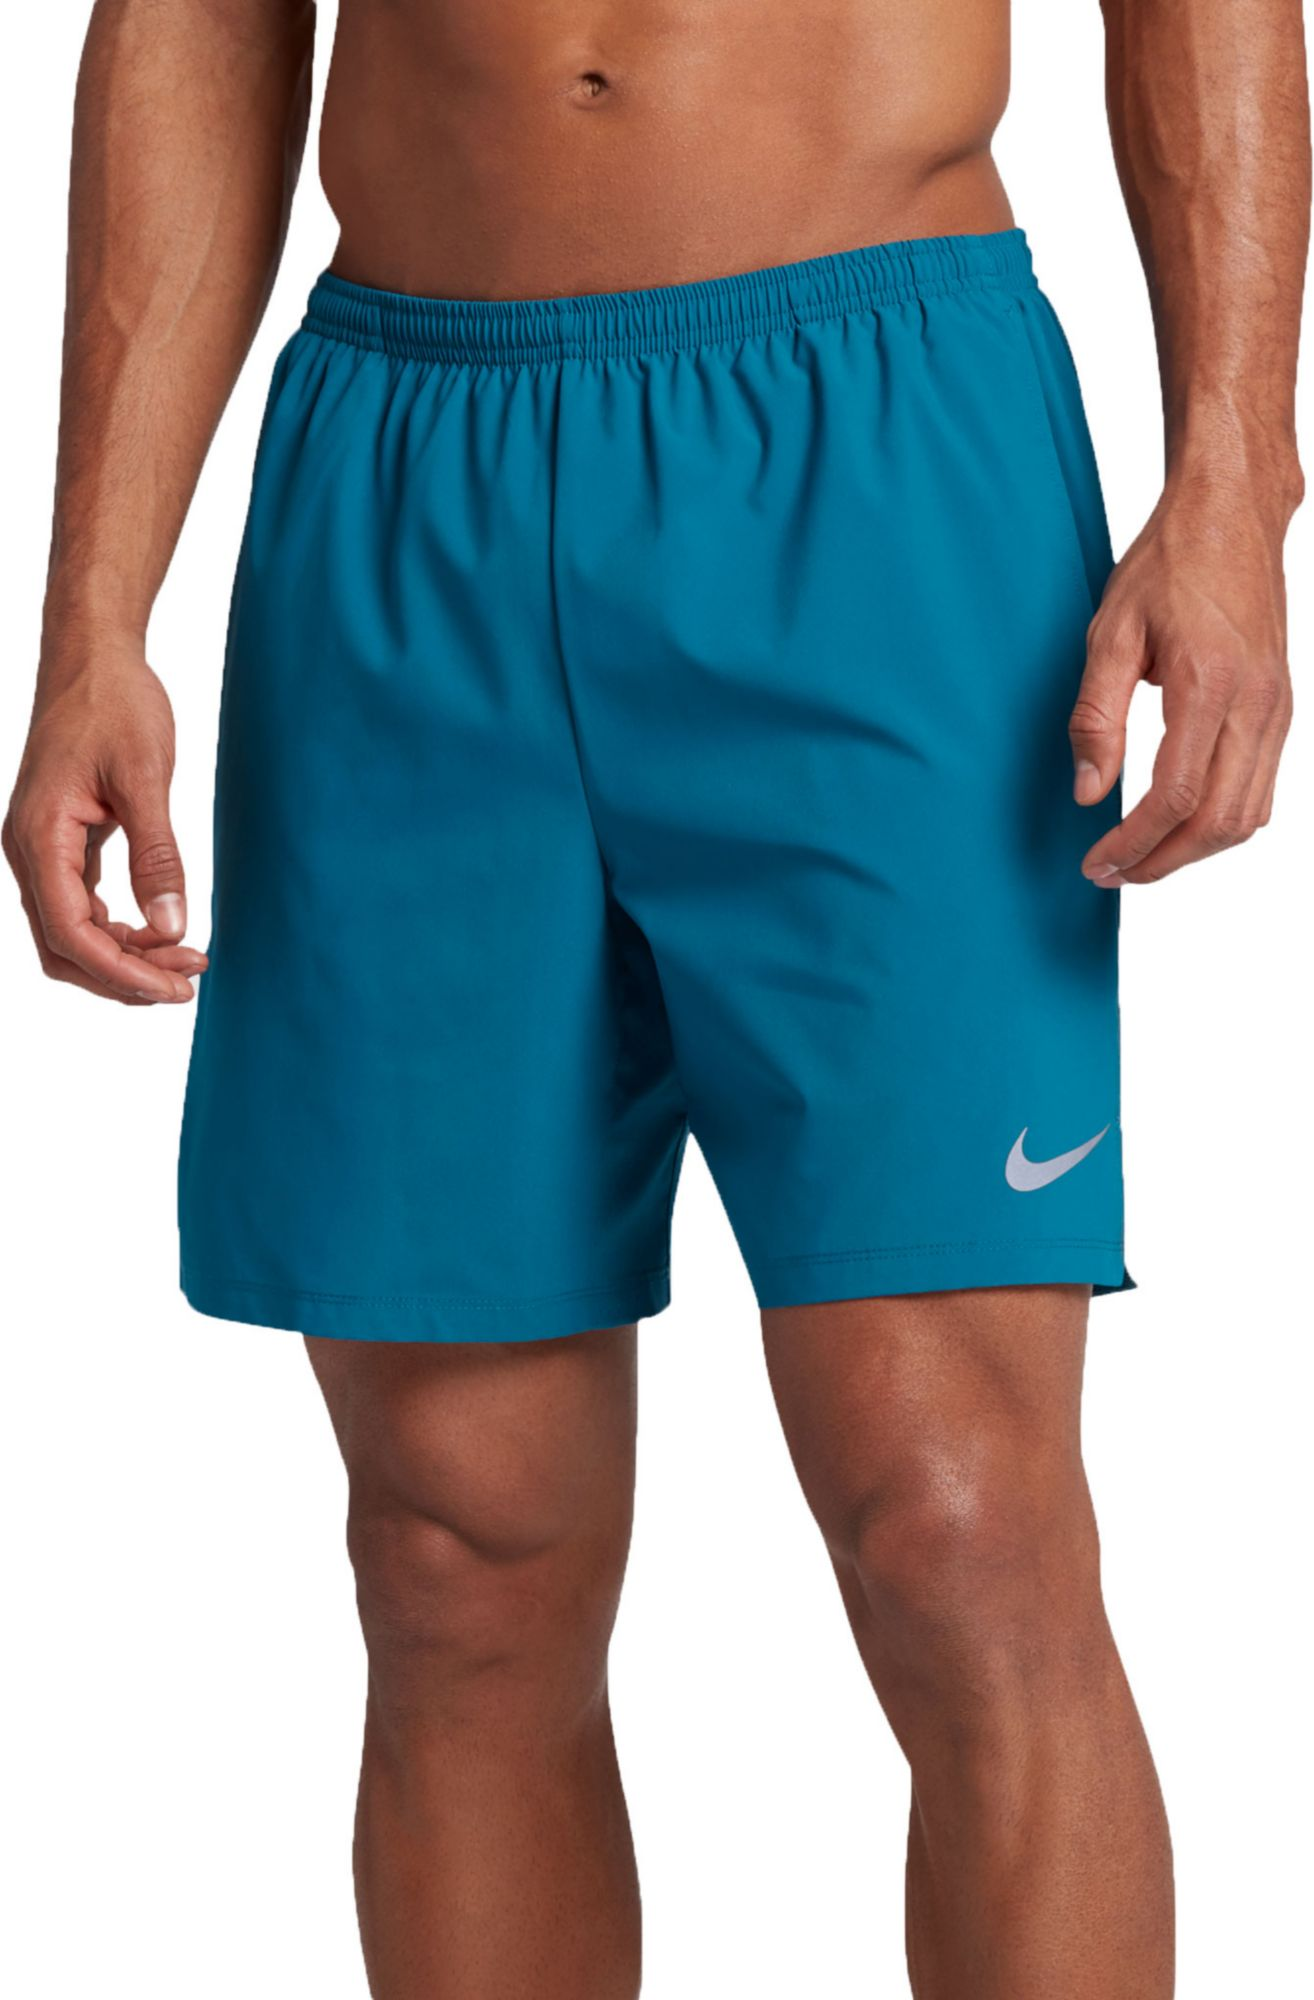 nike men's running shorts with liner